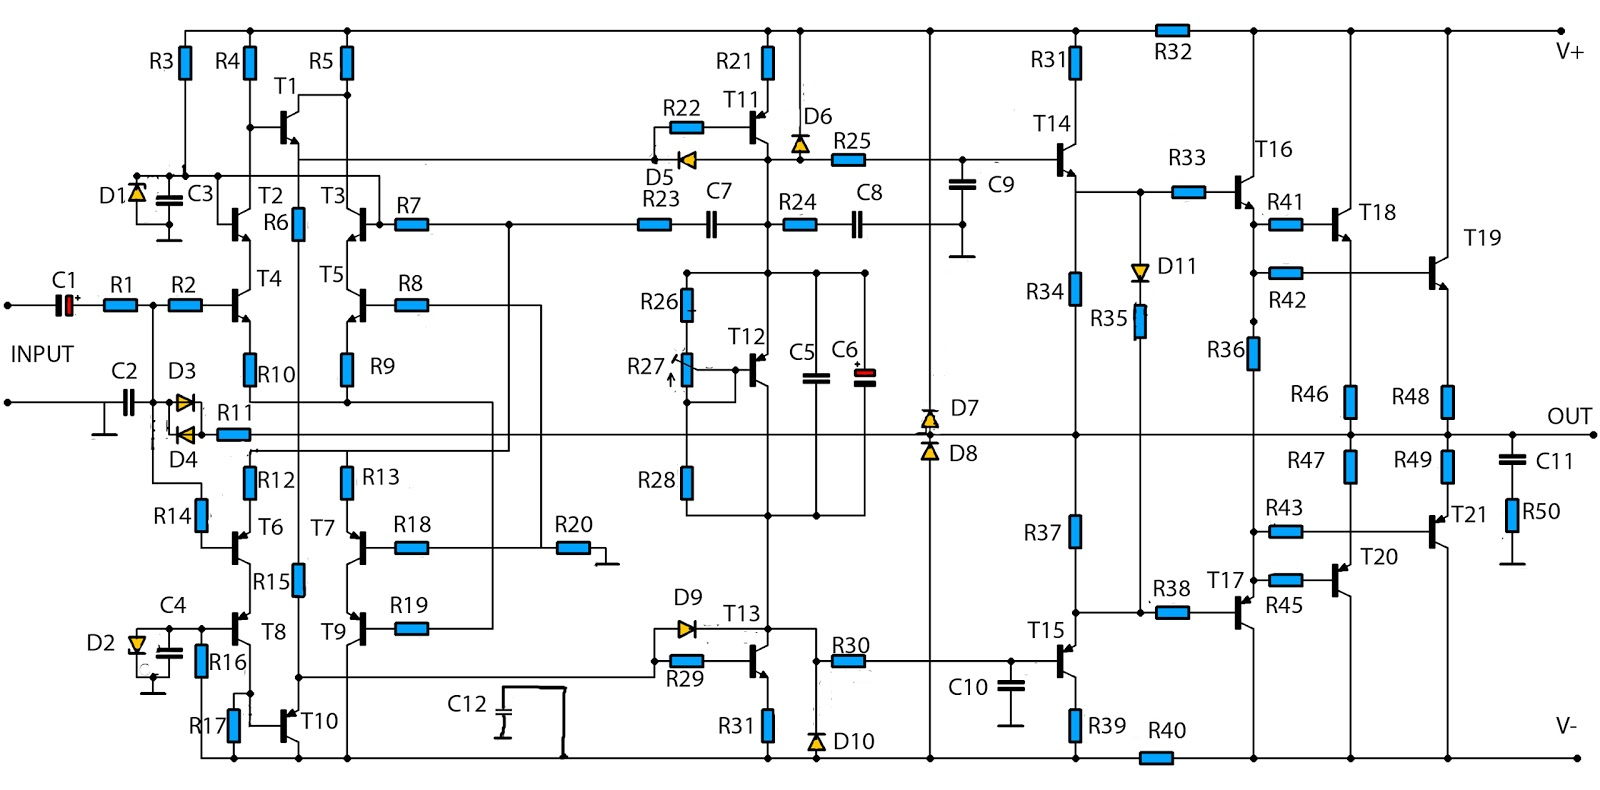 Amplifier Schematic Circuit Diagram - Wiring Diagram & Electricity ...